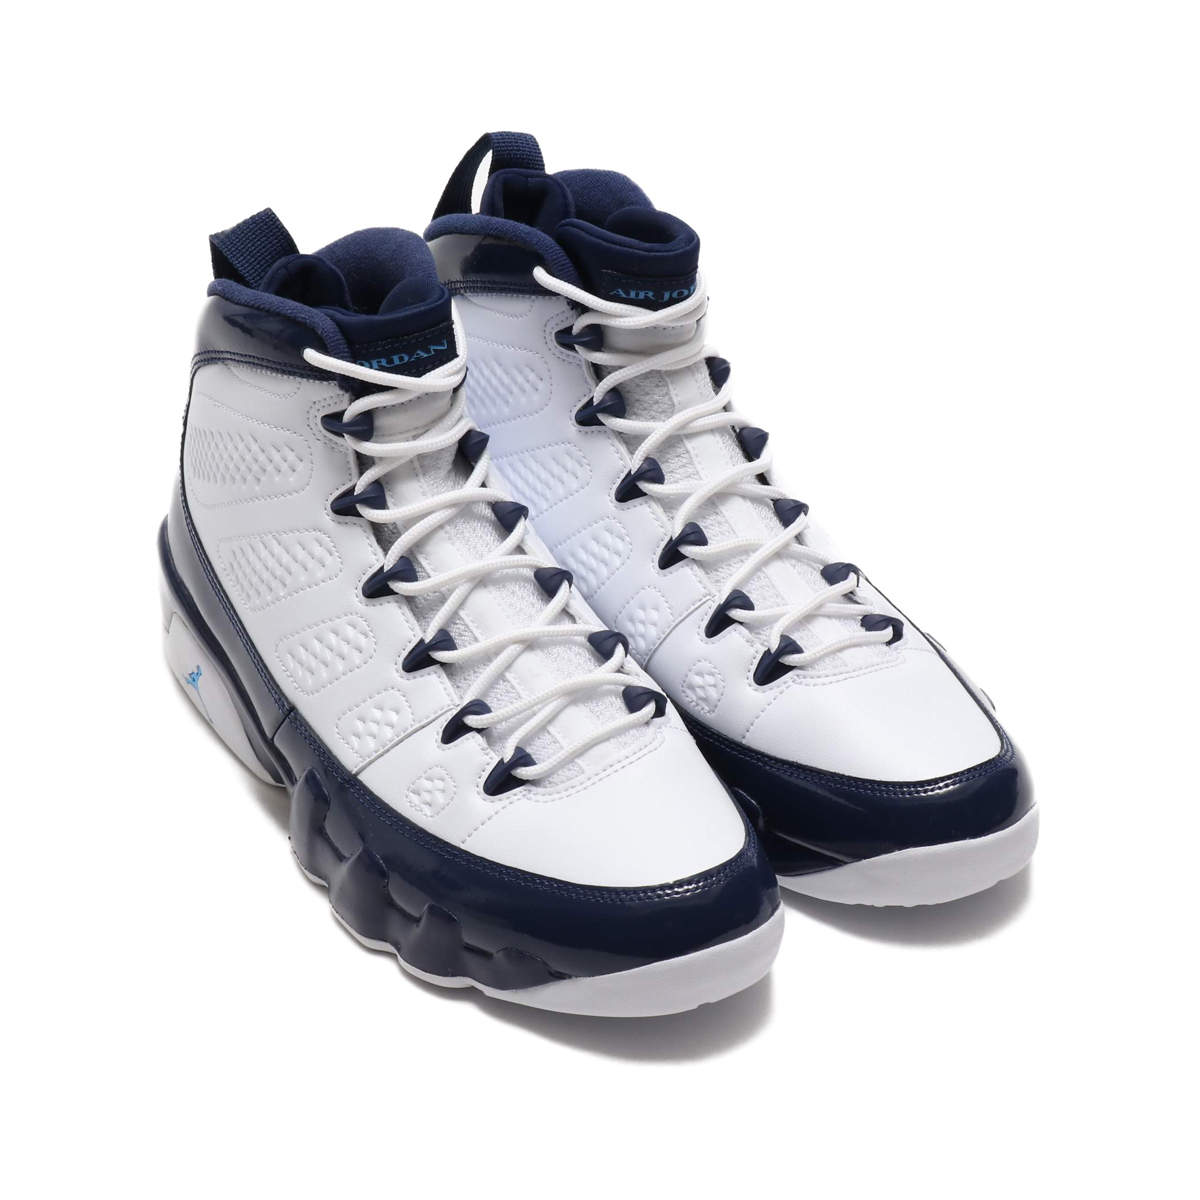 NIKE AIR JORDAN 9 RETRO (ナイキ エア ジョーダン 9 レトロ)WHITE/UNIVERSITY BLUE-MIDNIGHT NAVY【メンズ スニーカー】19SP-S